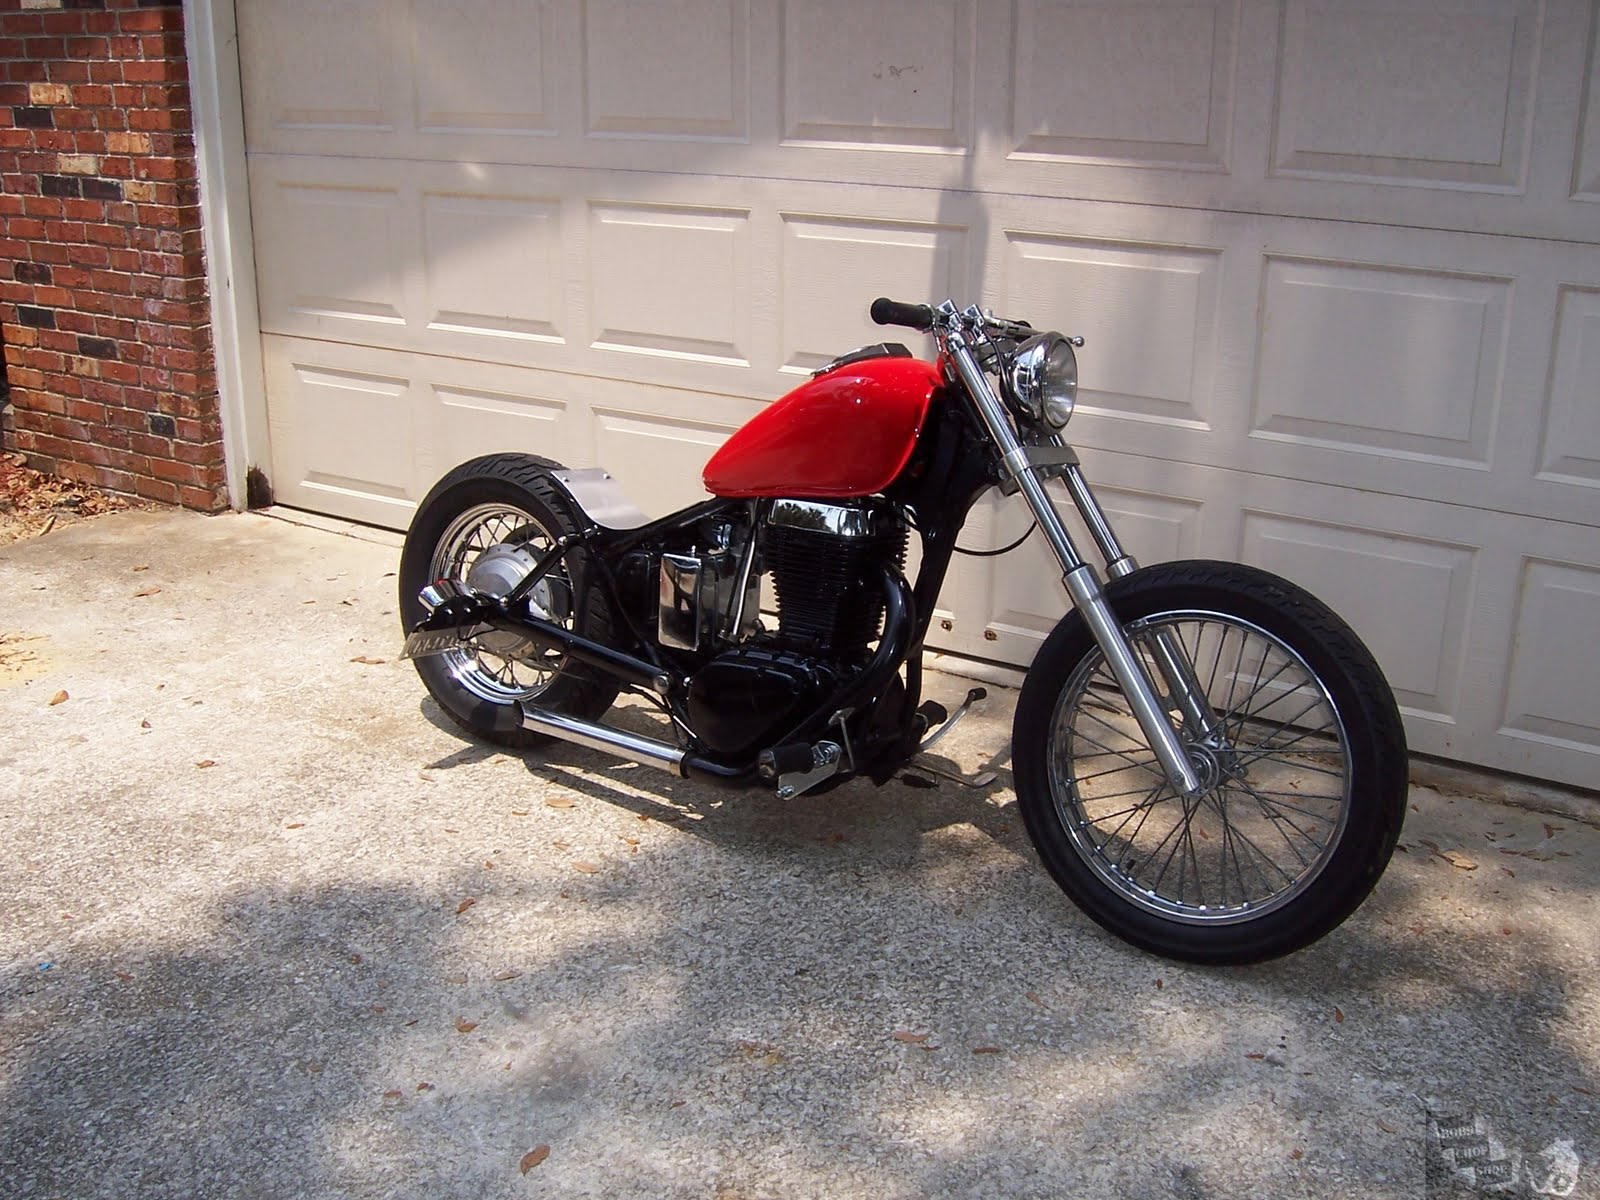 suzuki+savage+ls650+bobber+chopper+red+1